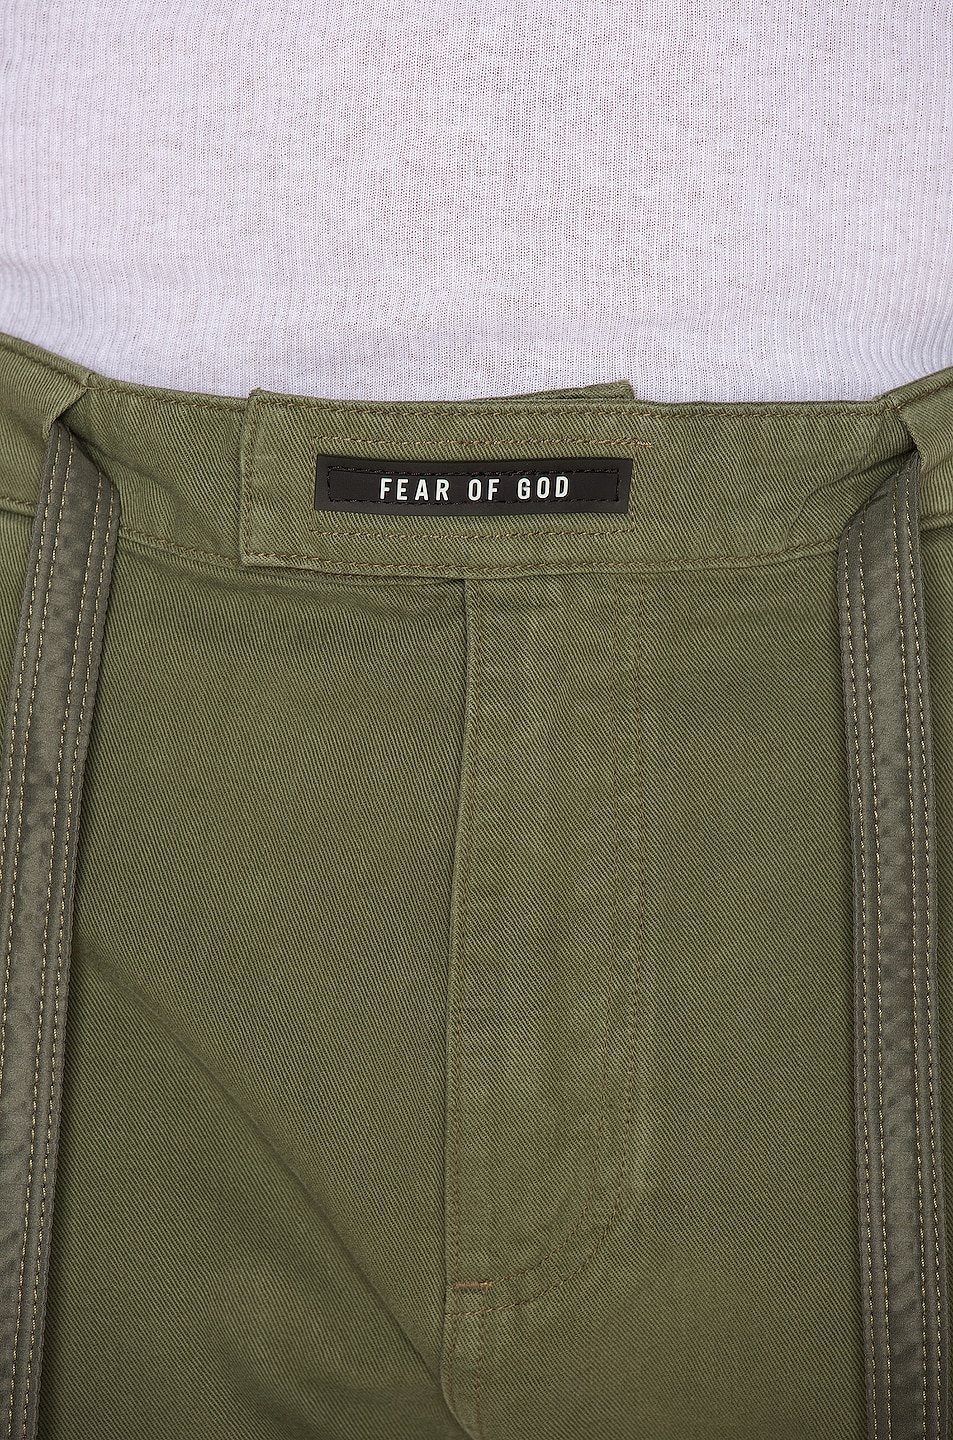 Image 5 of Fear of God Nylon Canvas Double Front Work Pant in Army Green